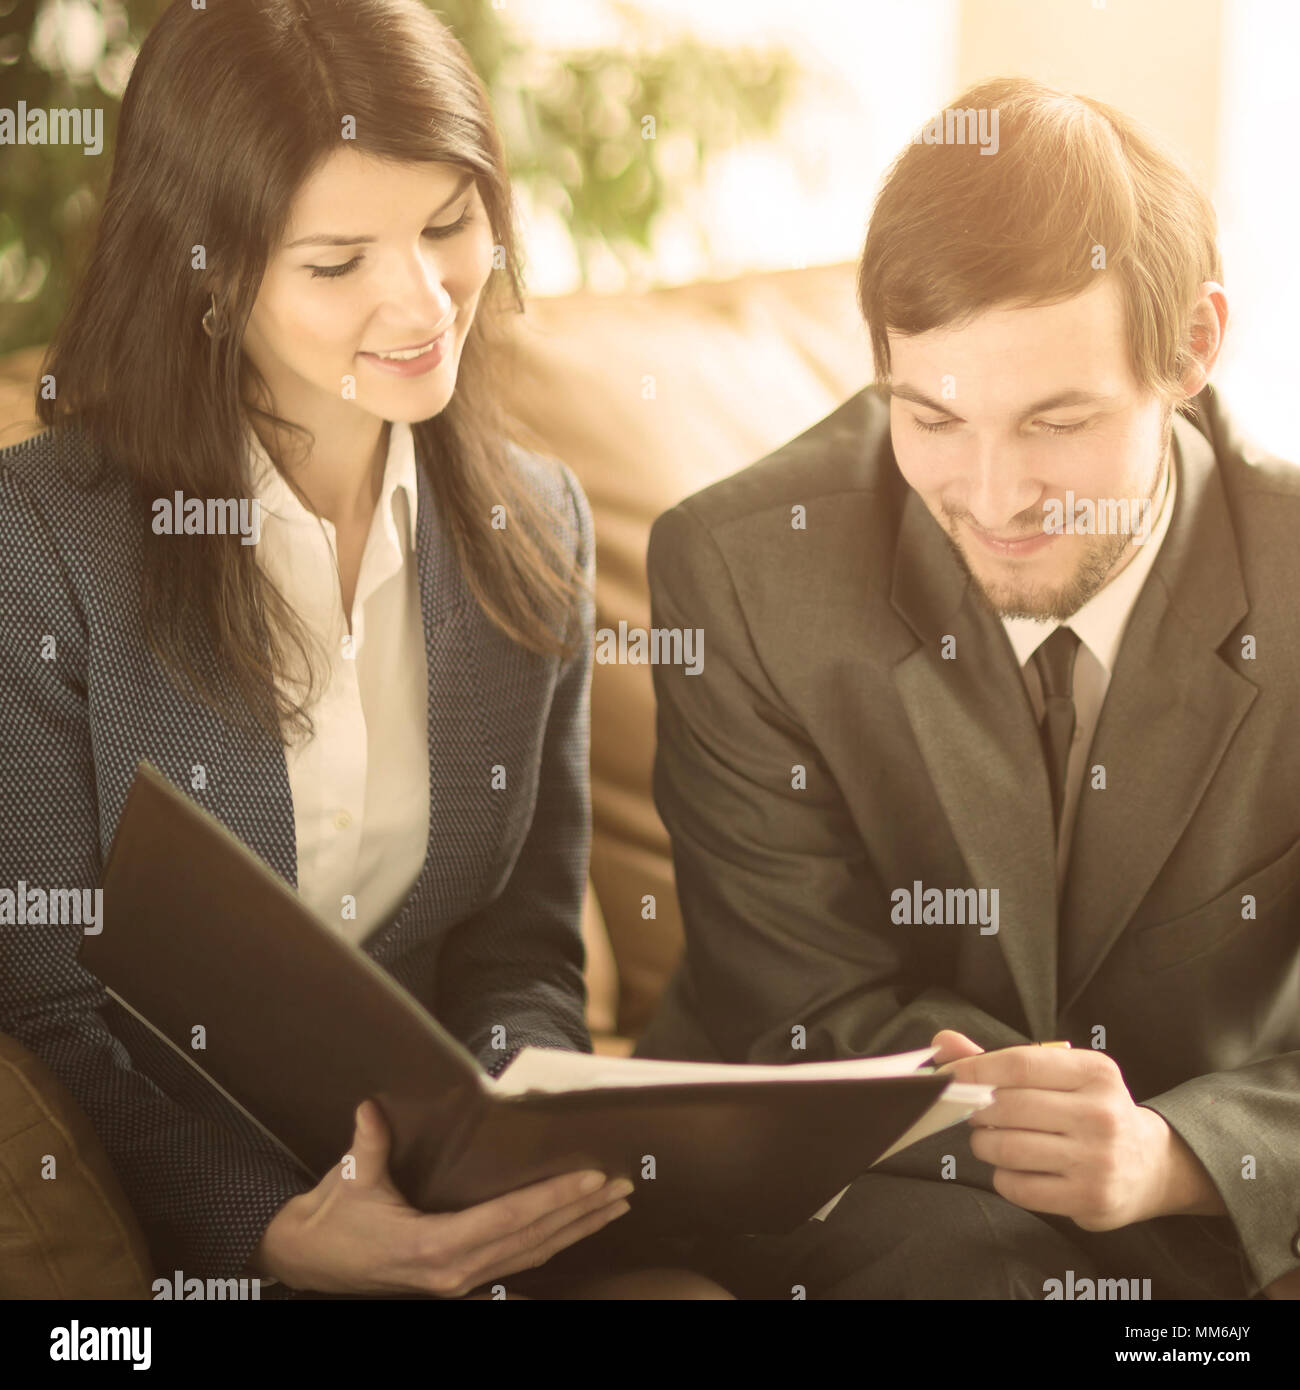 Image of business people listening and talking to their colleague at meeting - Stock Image